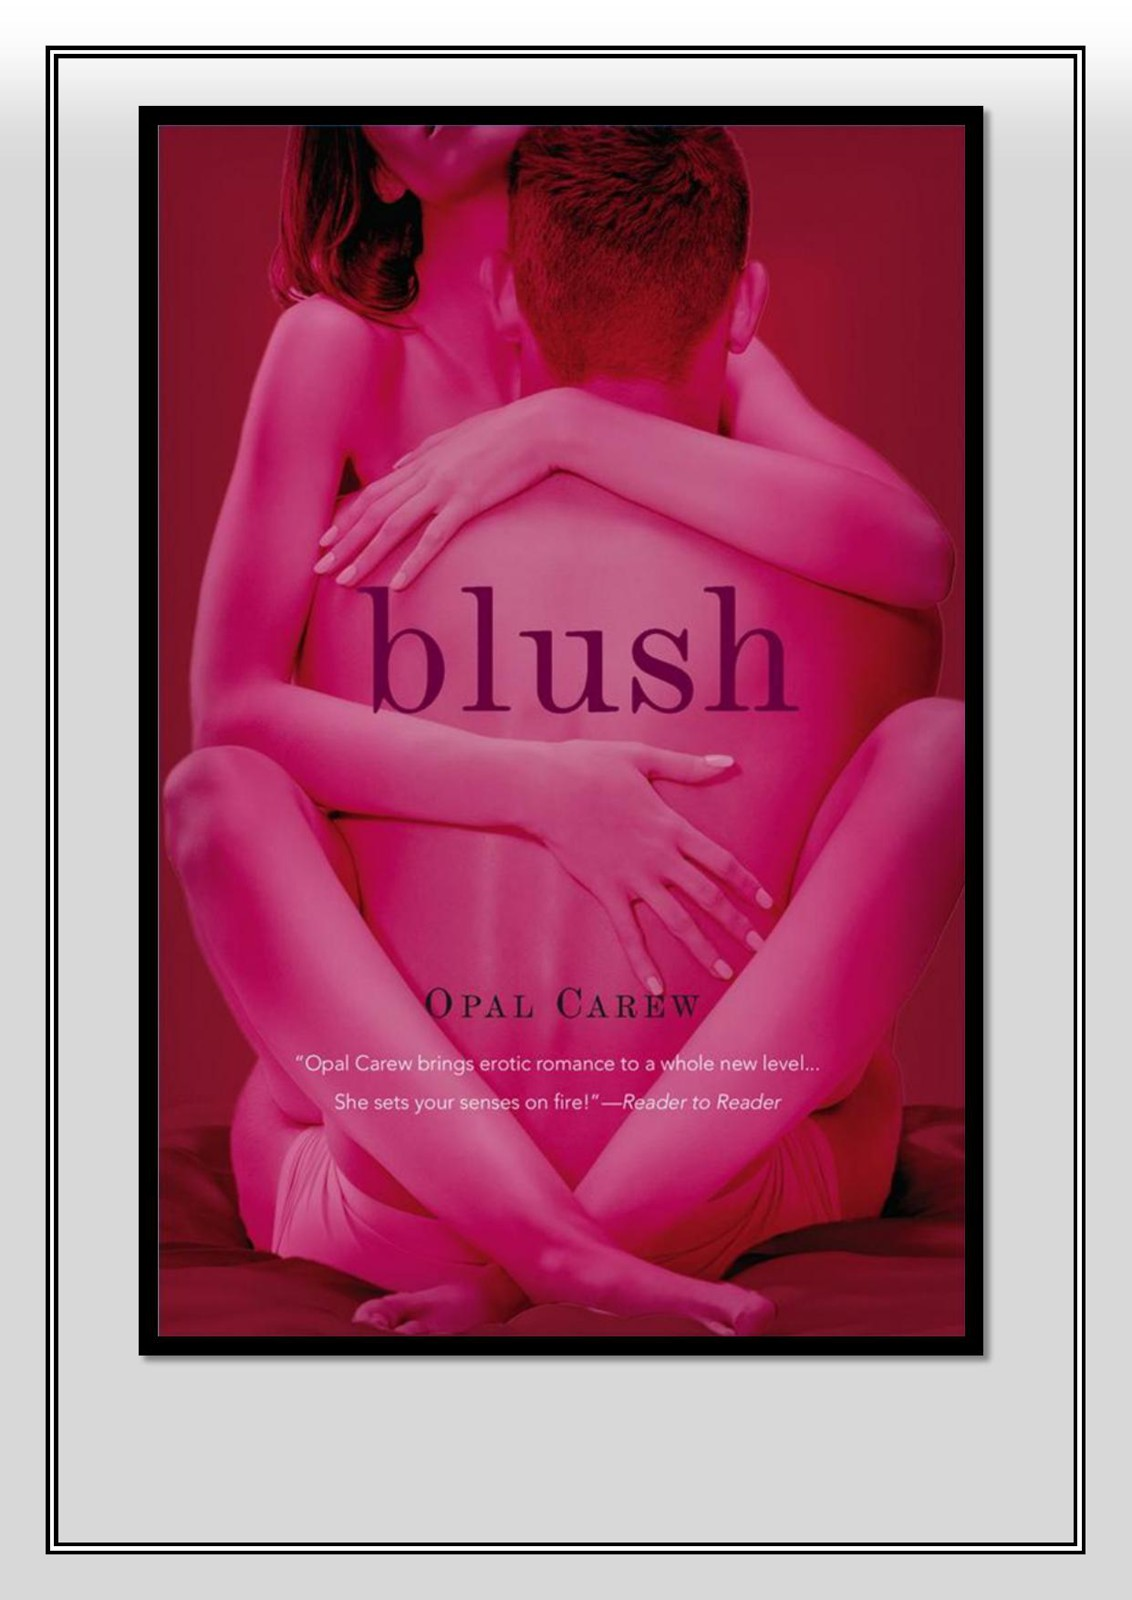 Blush Opal Carew Pdf